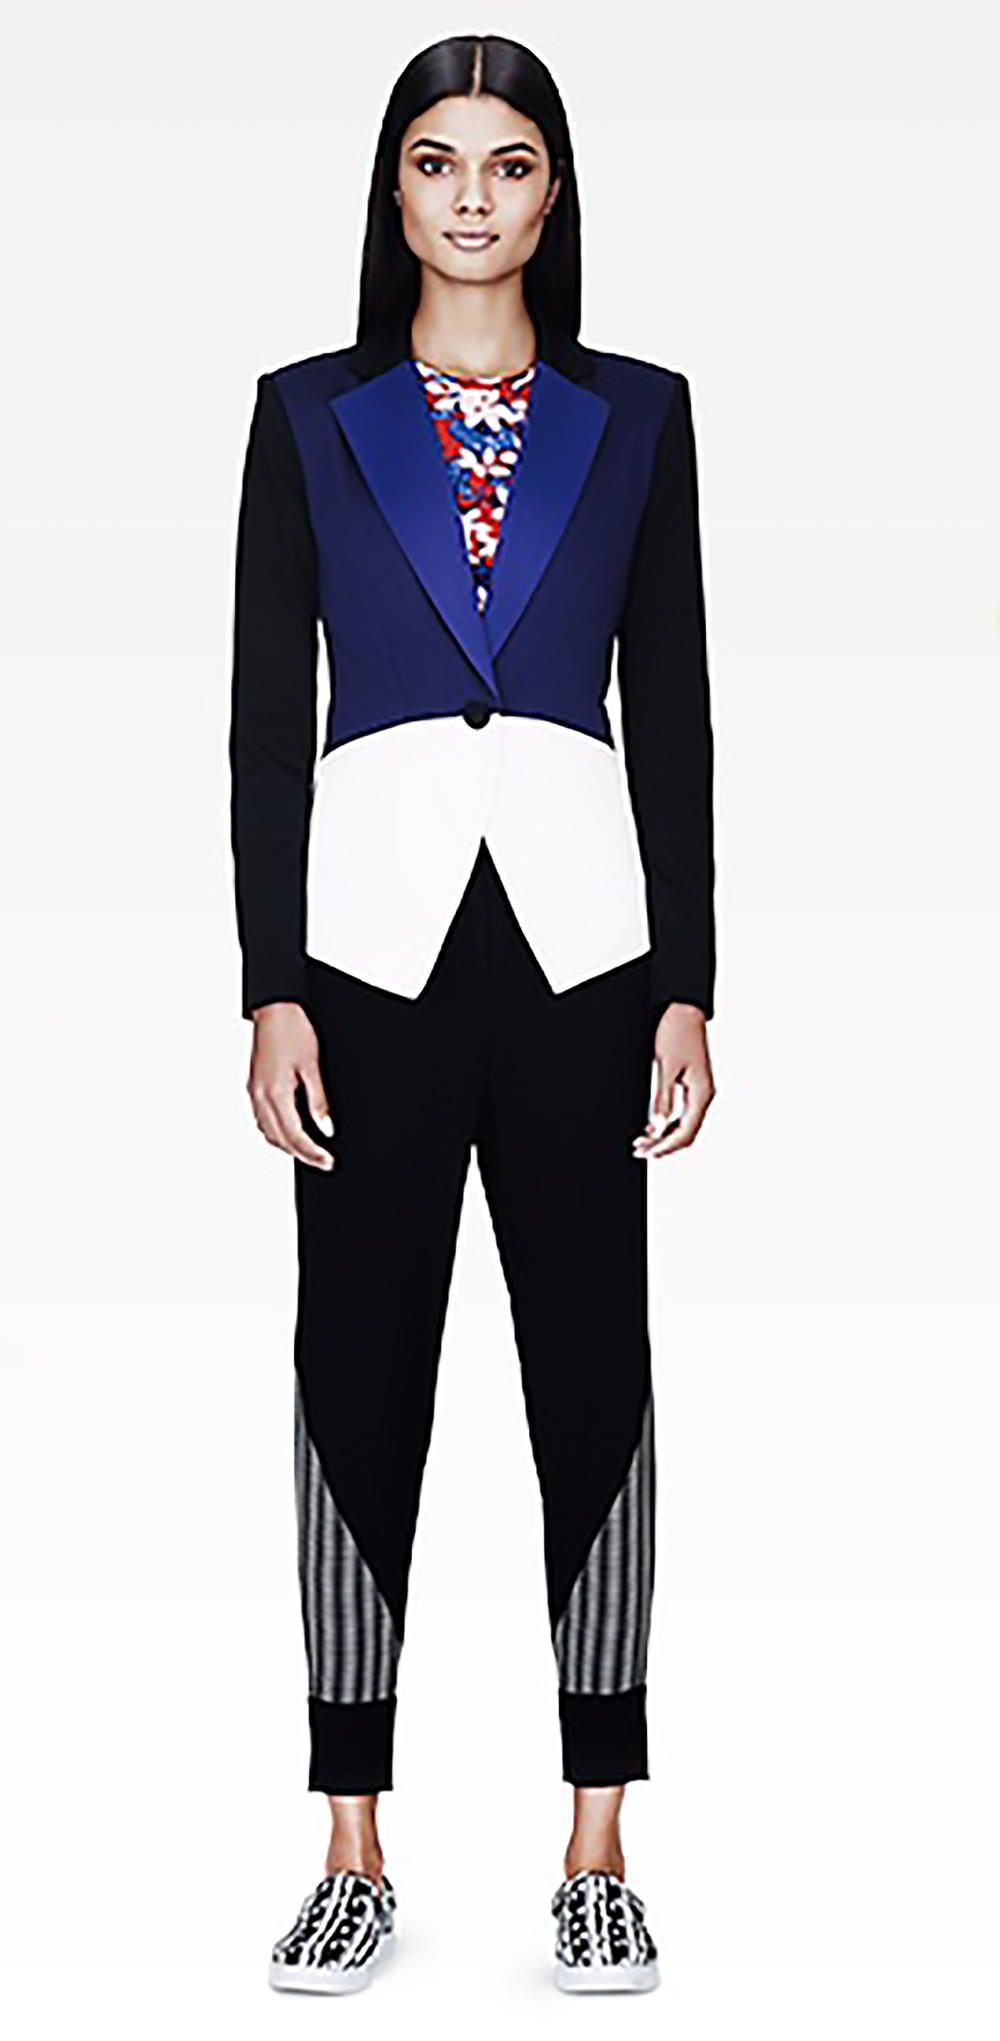 target.com peter pilotto blazer in blue-black-white colorblock 1500.jpg